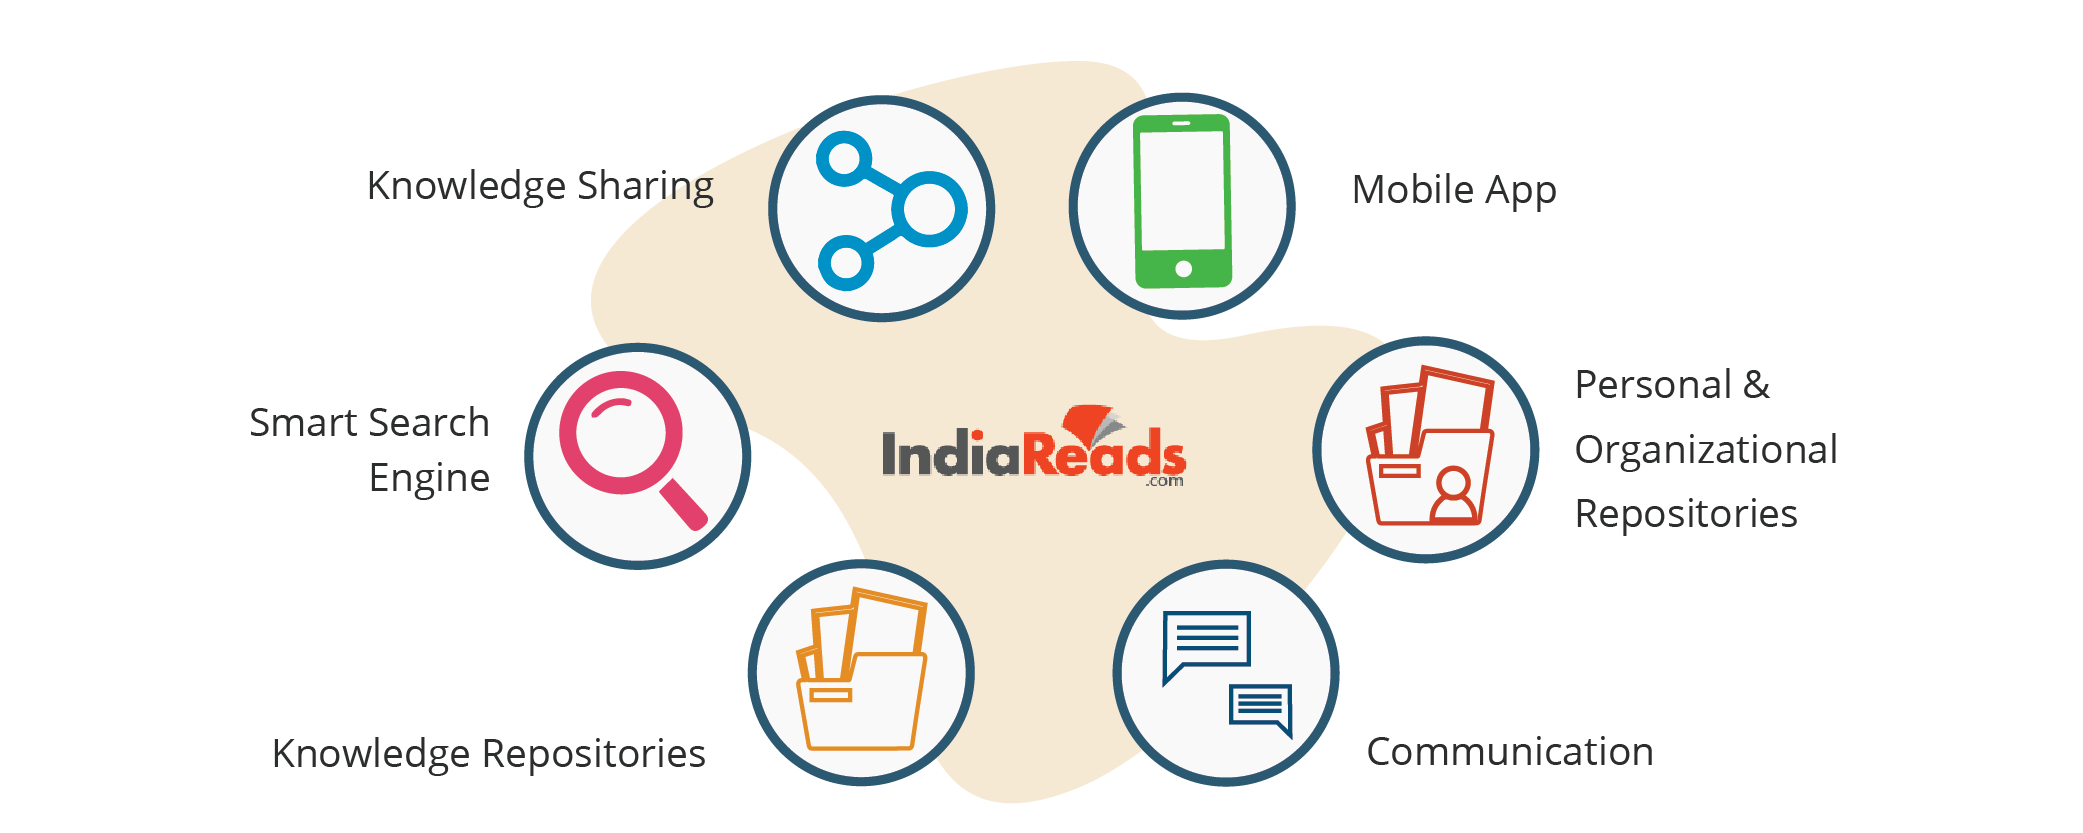 An Illustration showing Indiareads' KSP features: Knowledge Sharing, Smart search engine, Knowledge repositories, etc.